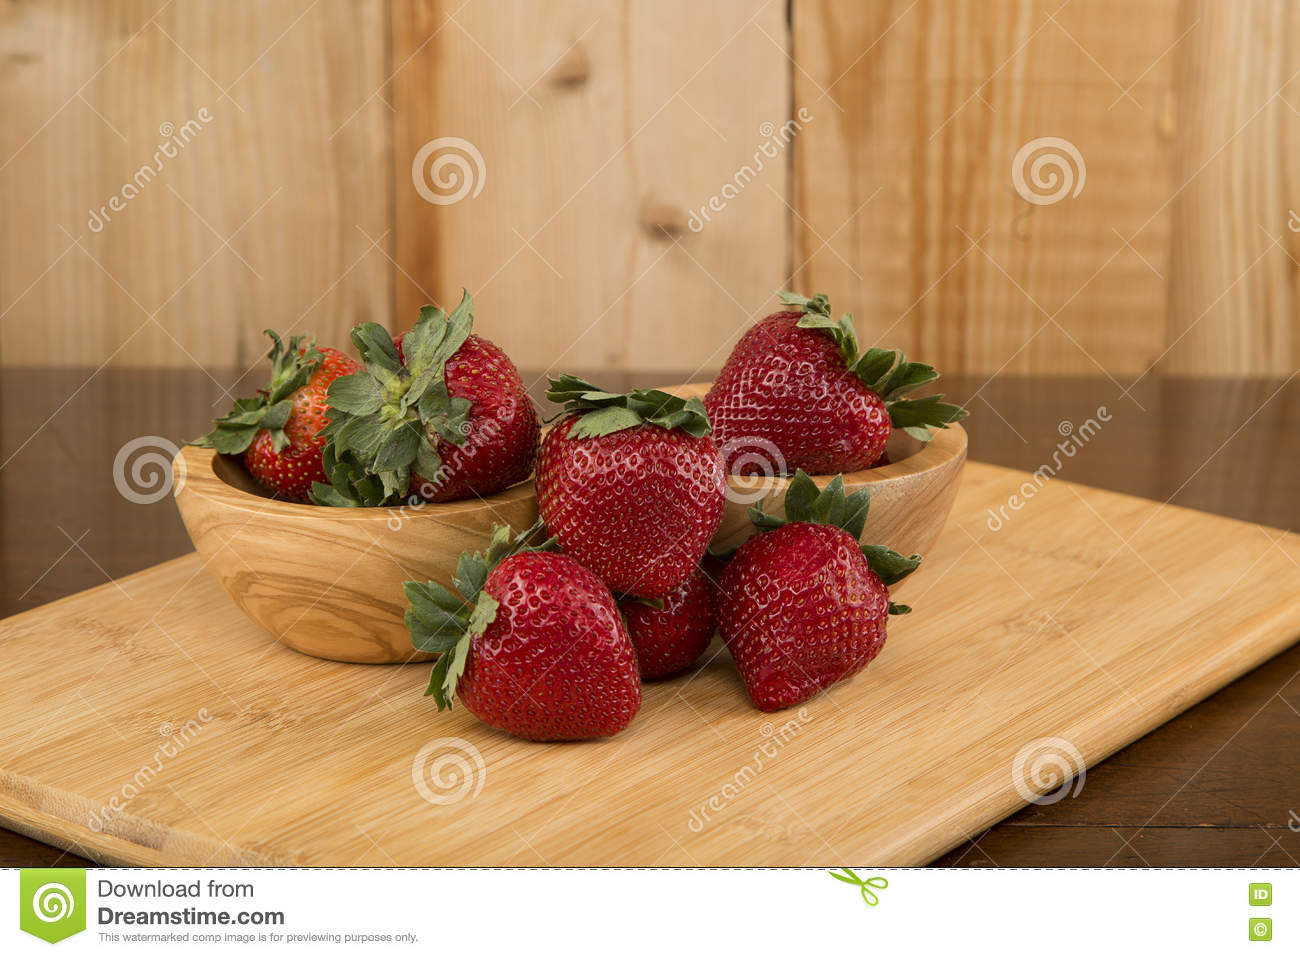 Strawberries Arranged On A Cutting Board And An Antique Table Stock